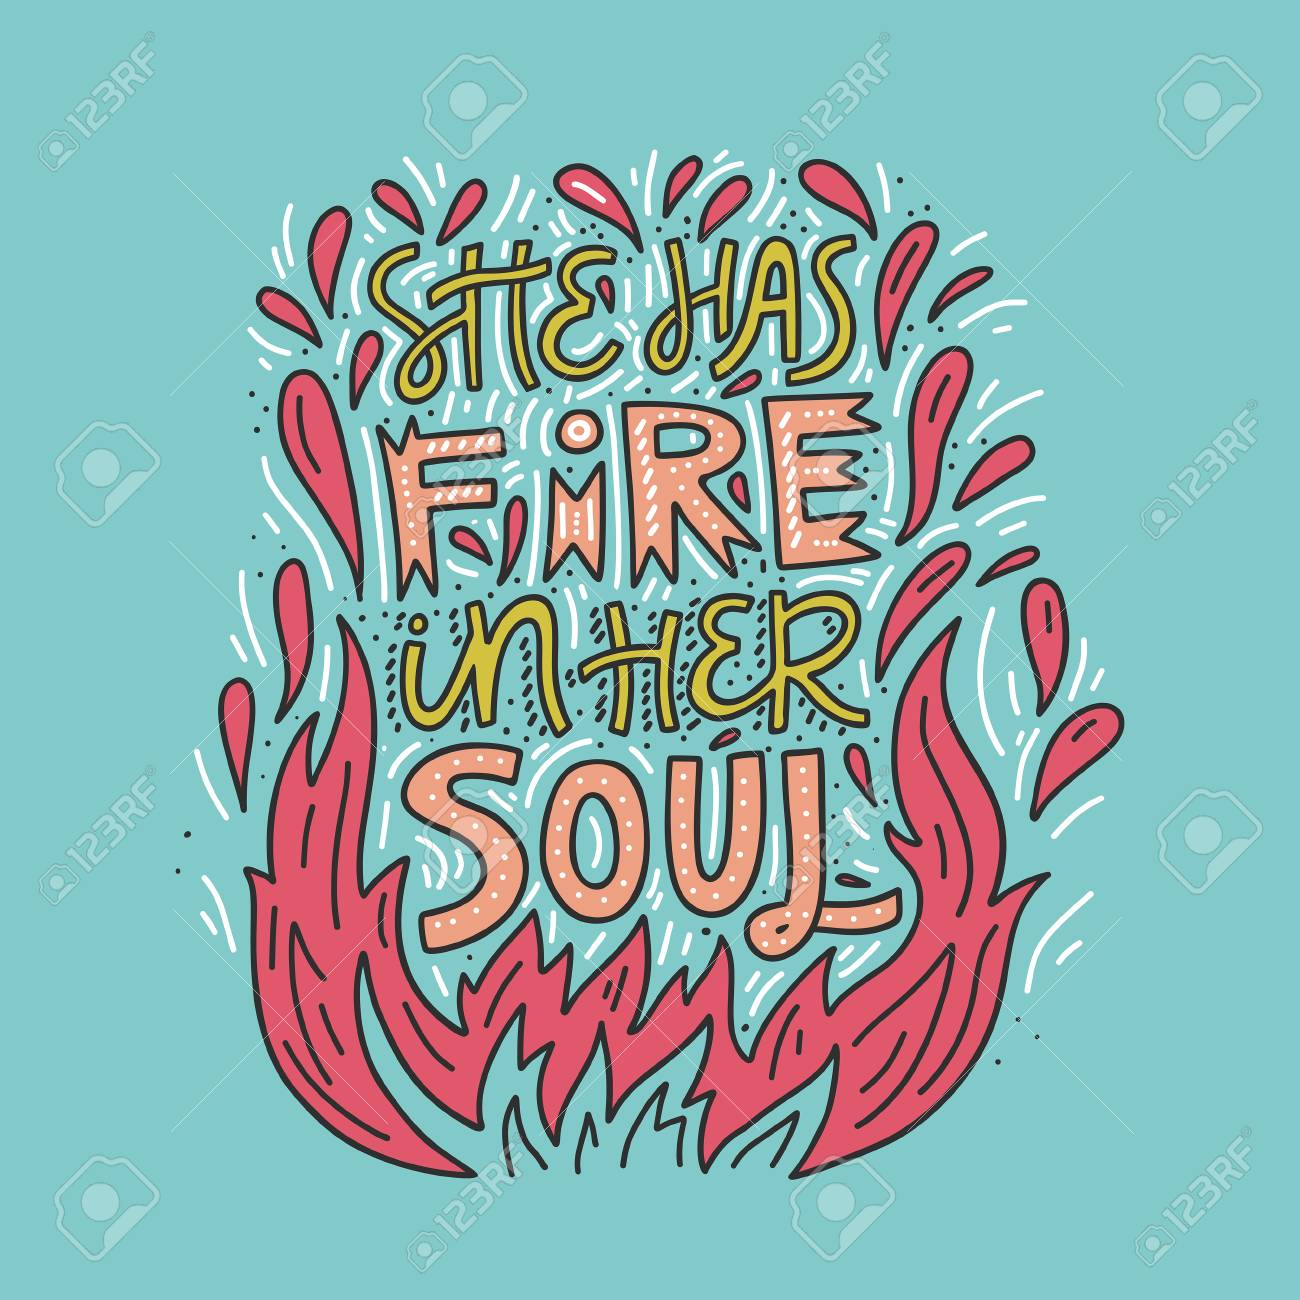 She Has Fire In Her Soul Hand Drawn Lettering Quote Design Royalty